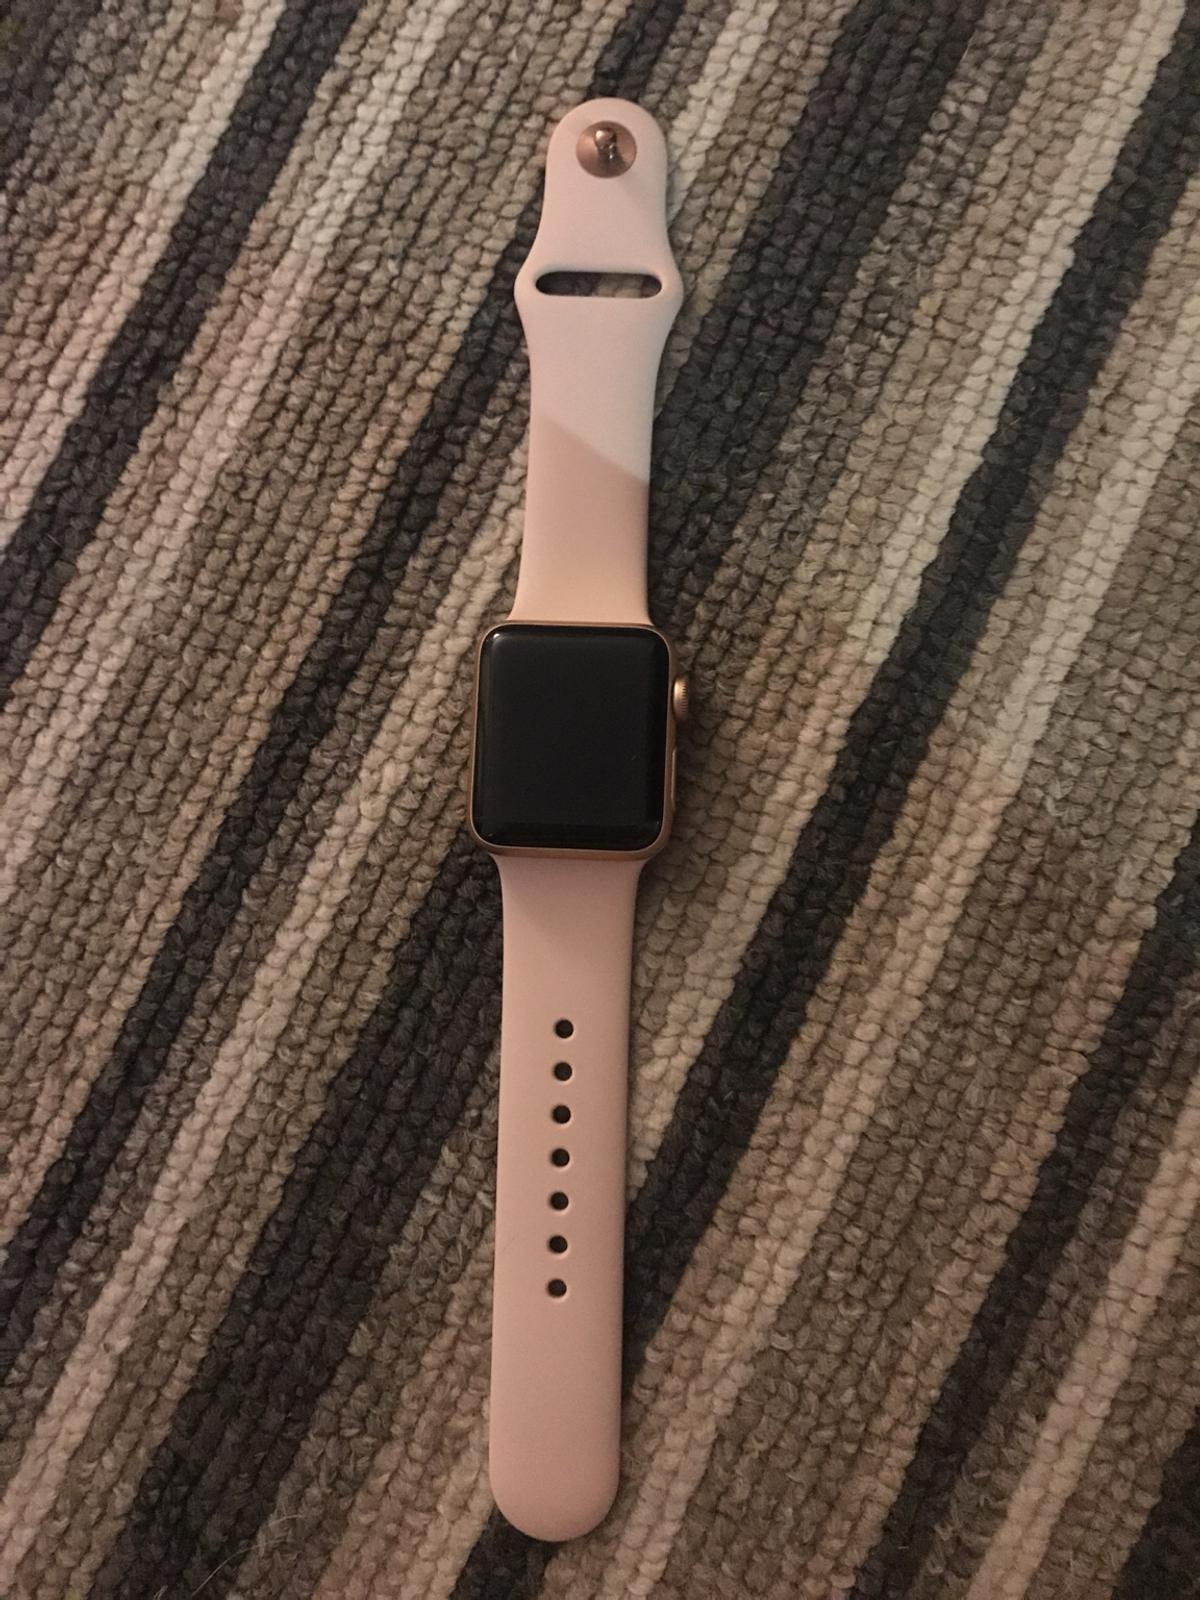 Apple Watch Series 3 Rose Gold Used Shop Clothing Shoes Online